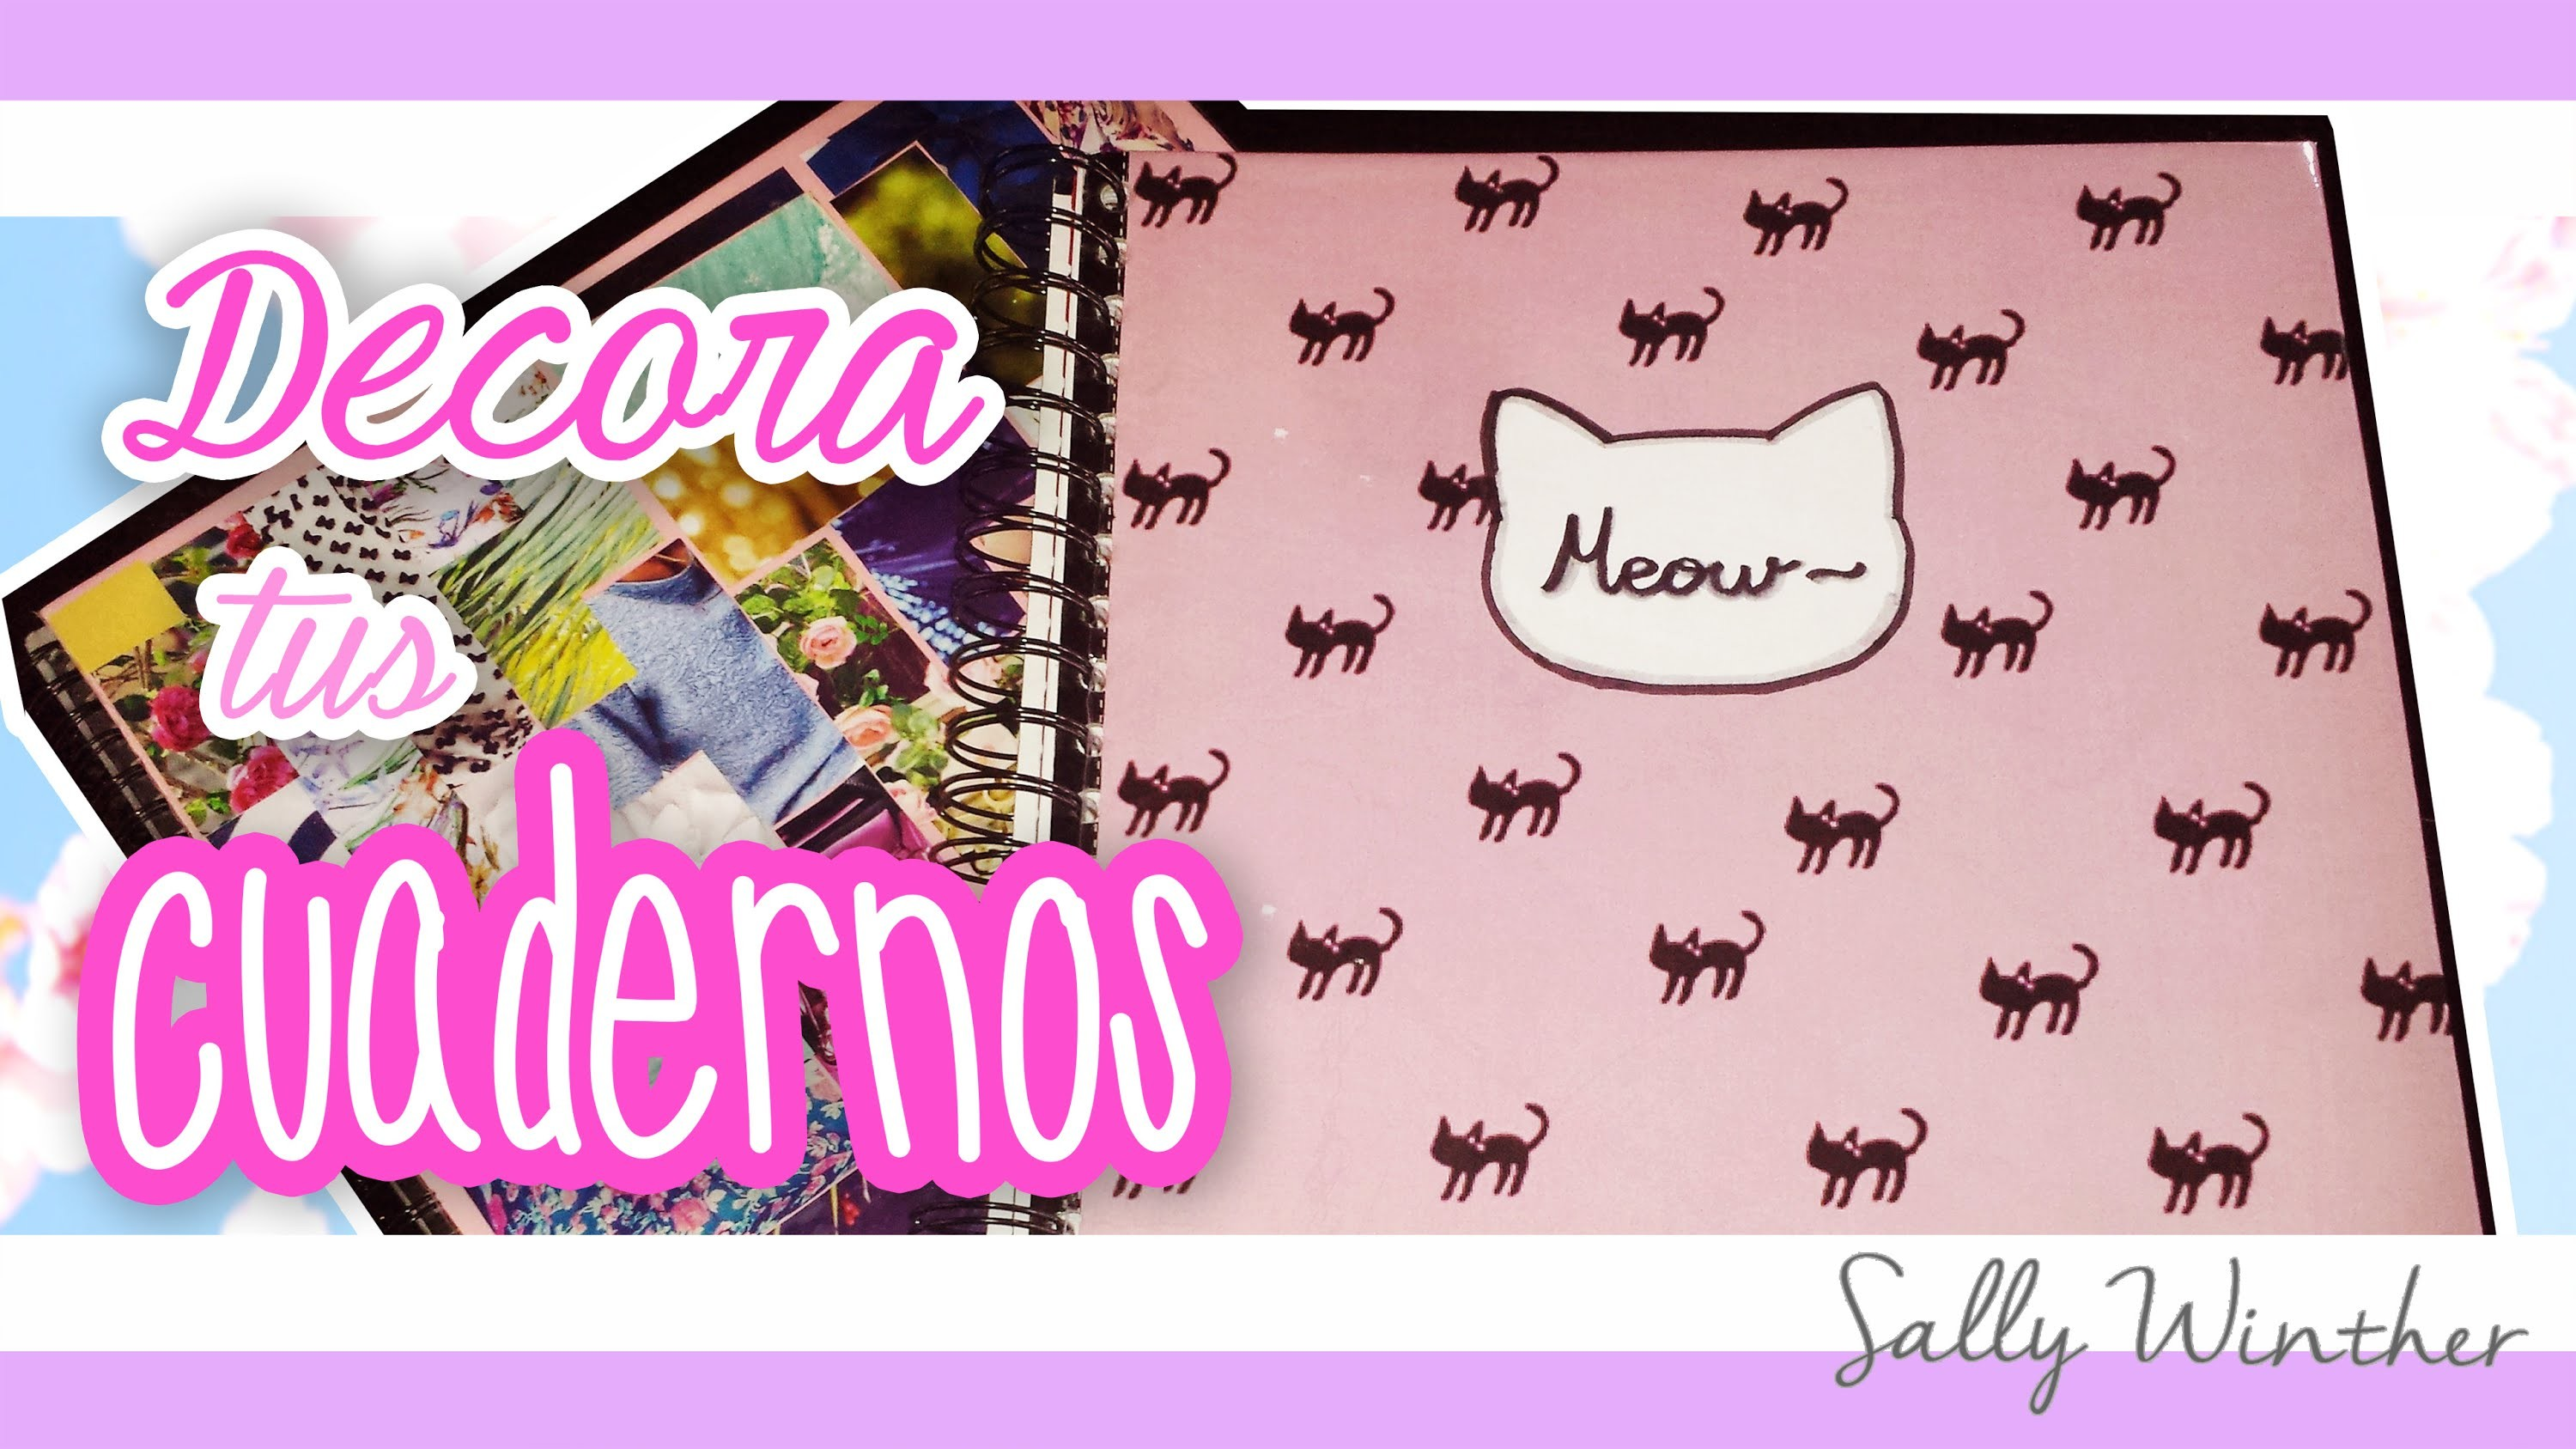 DECORA TUS CUADERNOS | 4 IDEAS ♡ . Sally Winther